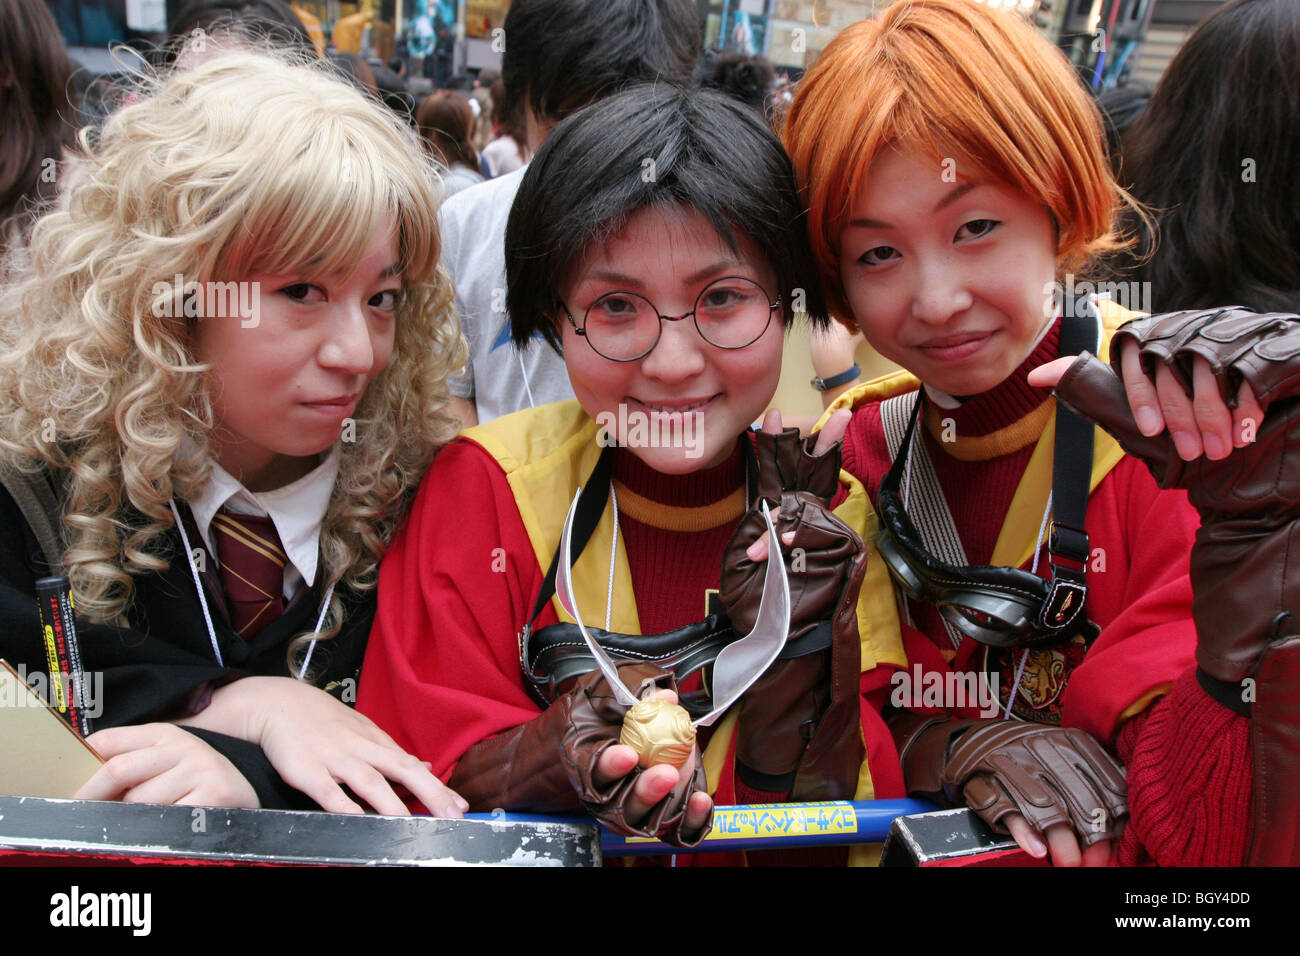 Japanese fans at the red carpet premiere of the 5th Harry Potter movie,Tokyo, Japan - Stock Image